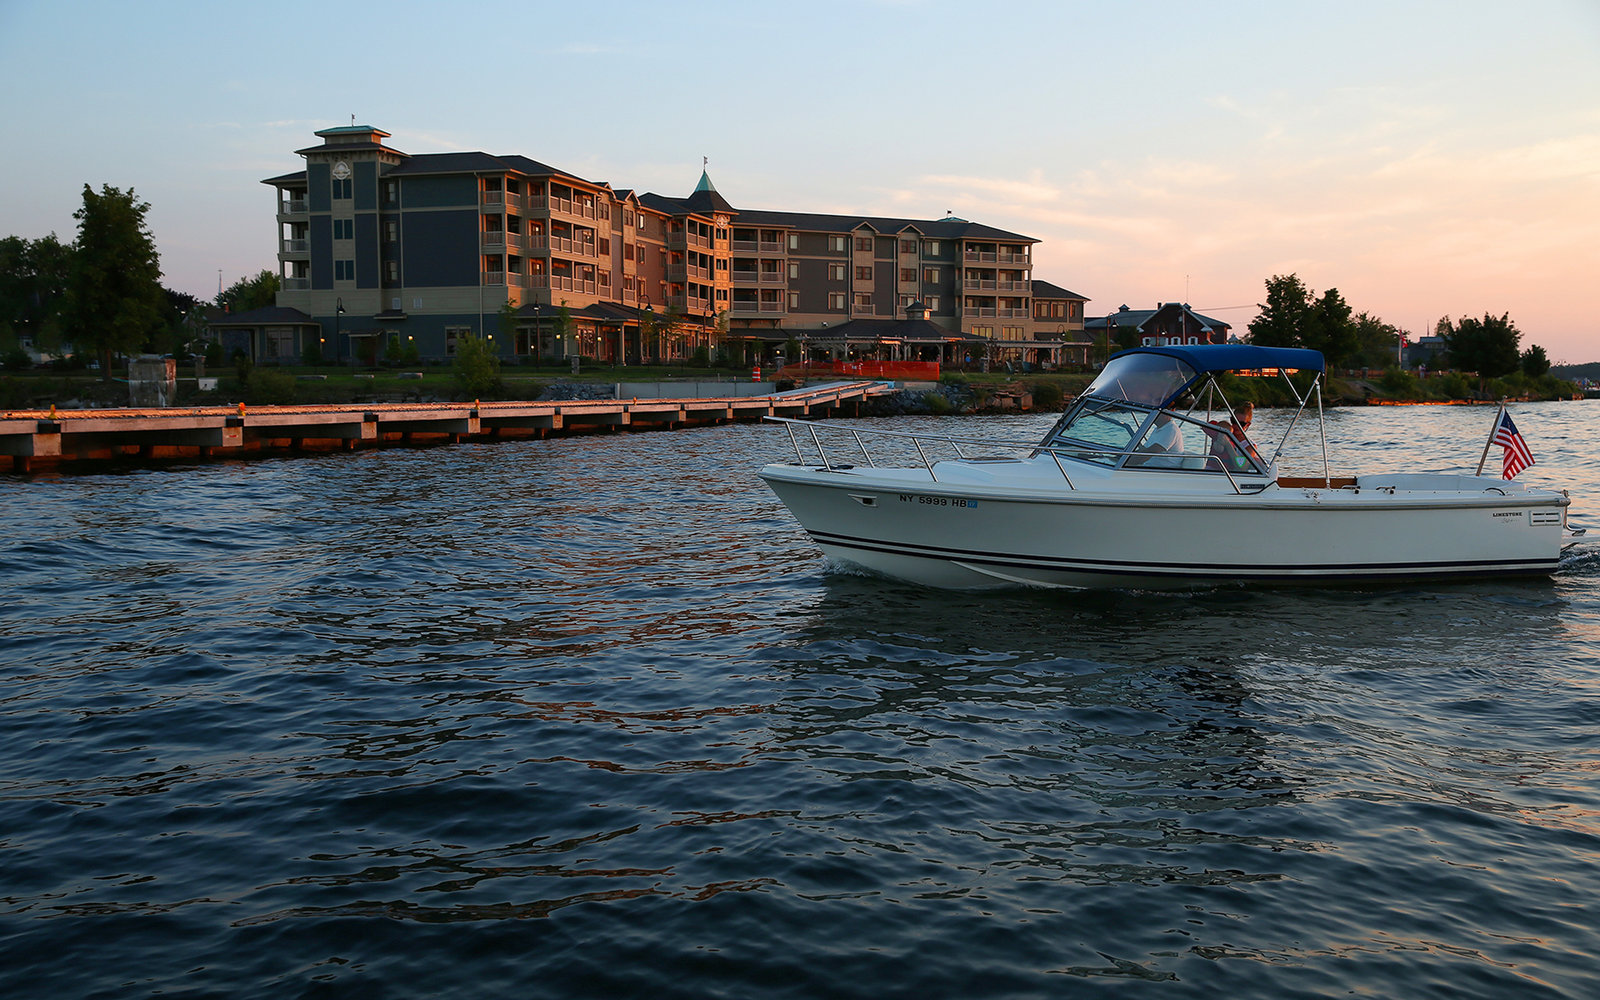 1000 Islands Harbor Hotel Wellness Getaways